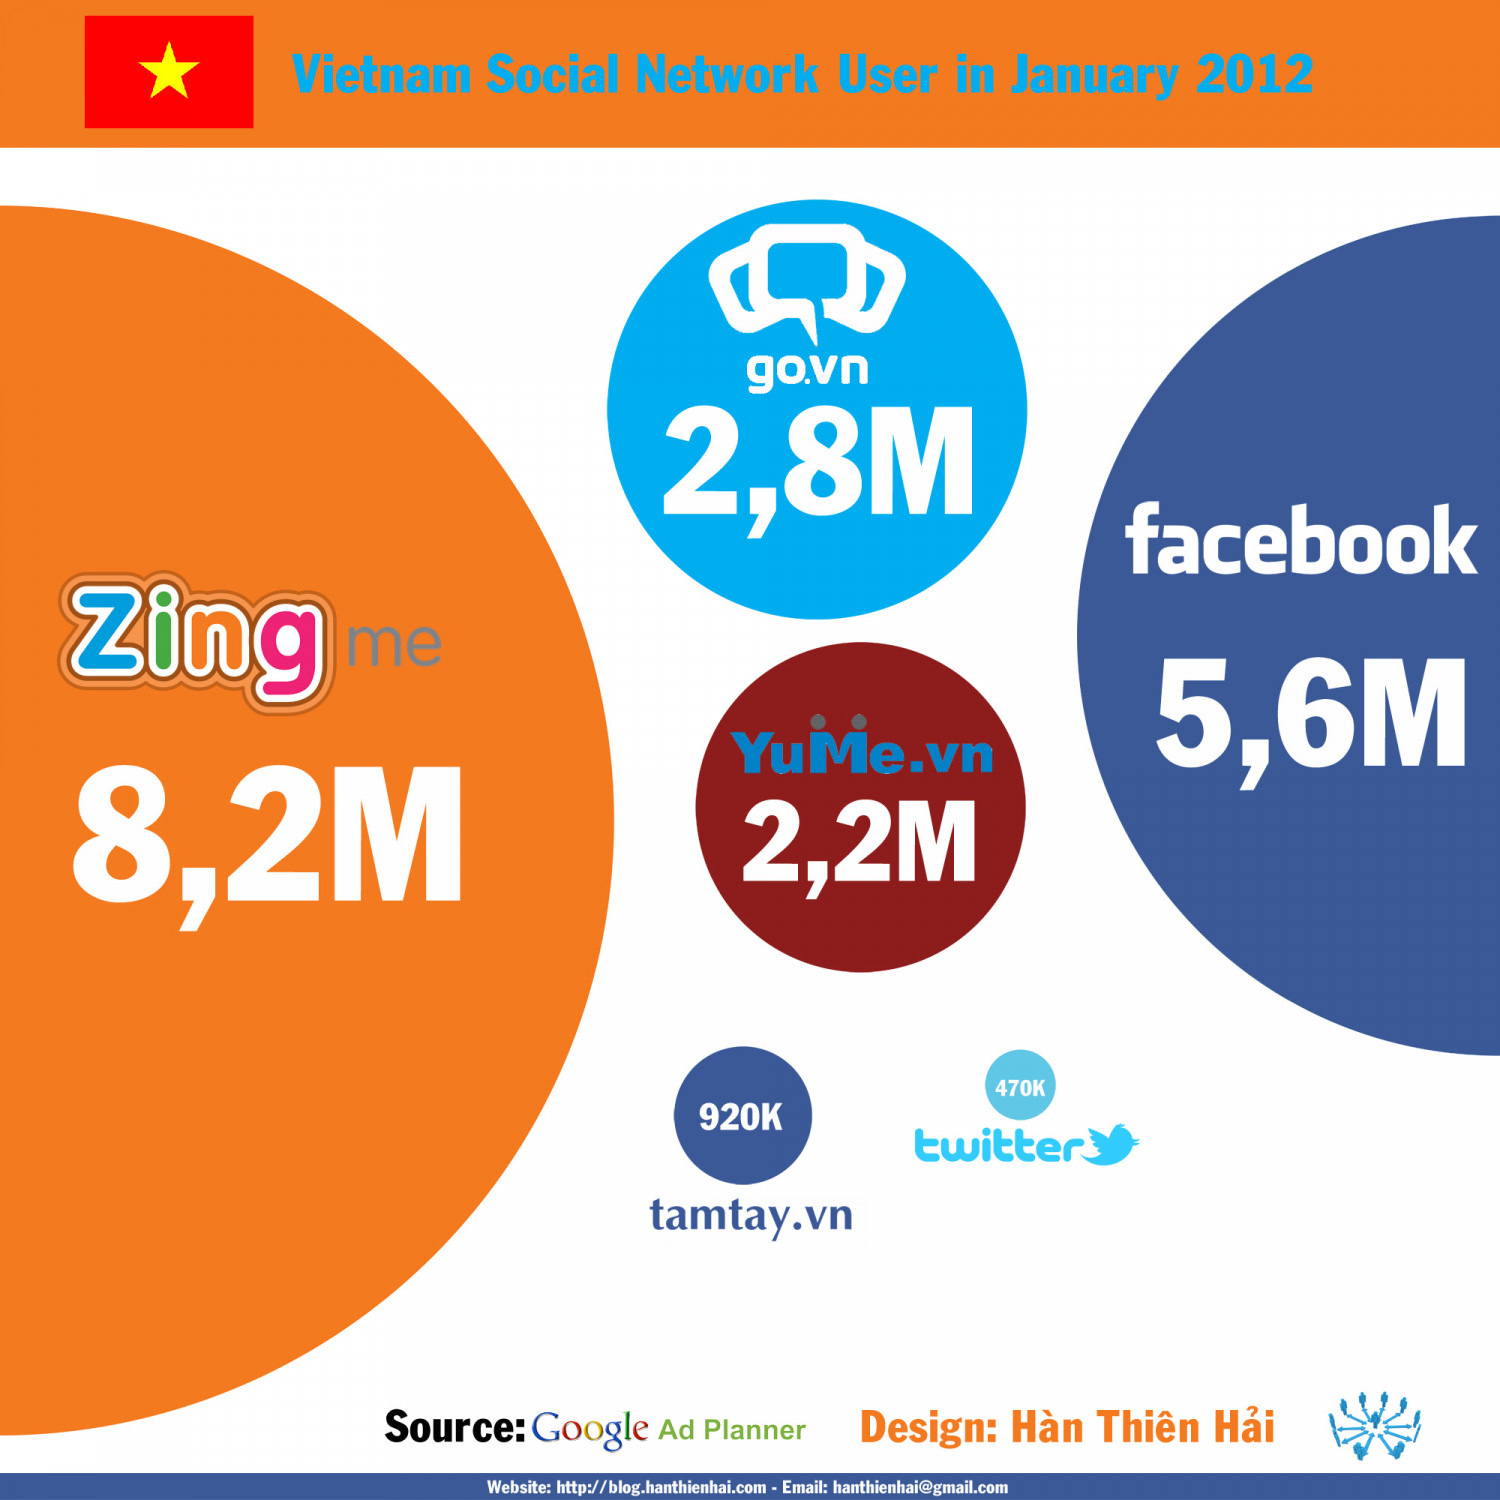 Vietnam Social Network User in January 2012 Infographic